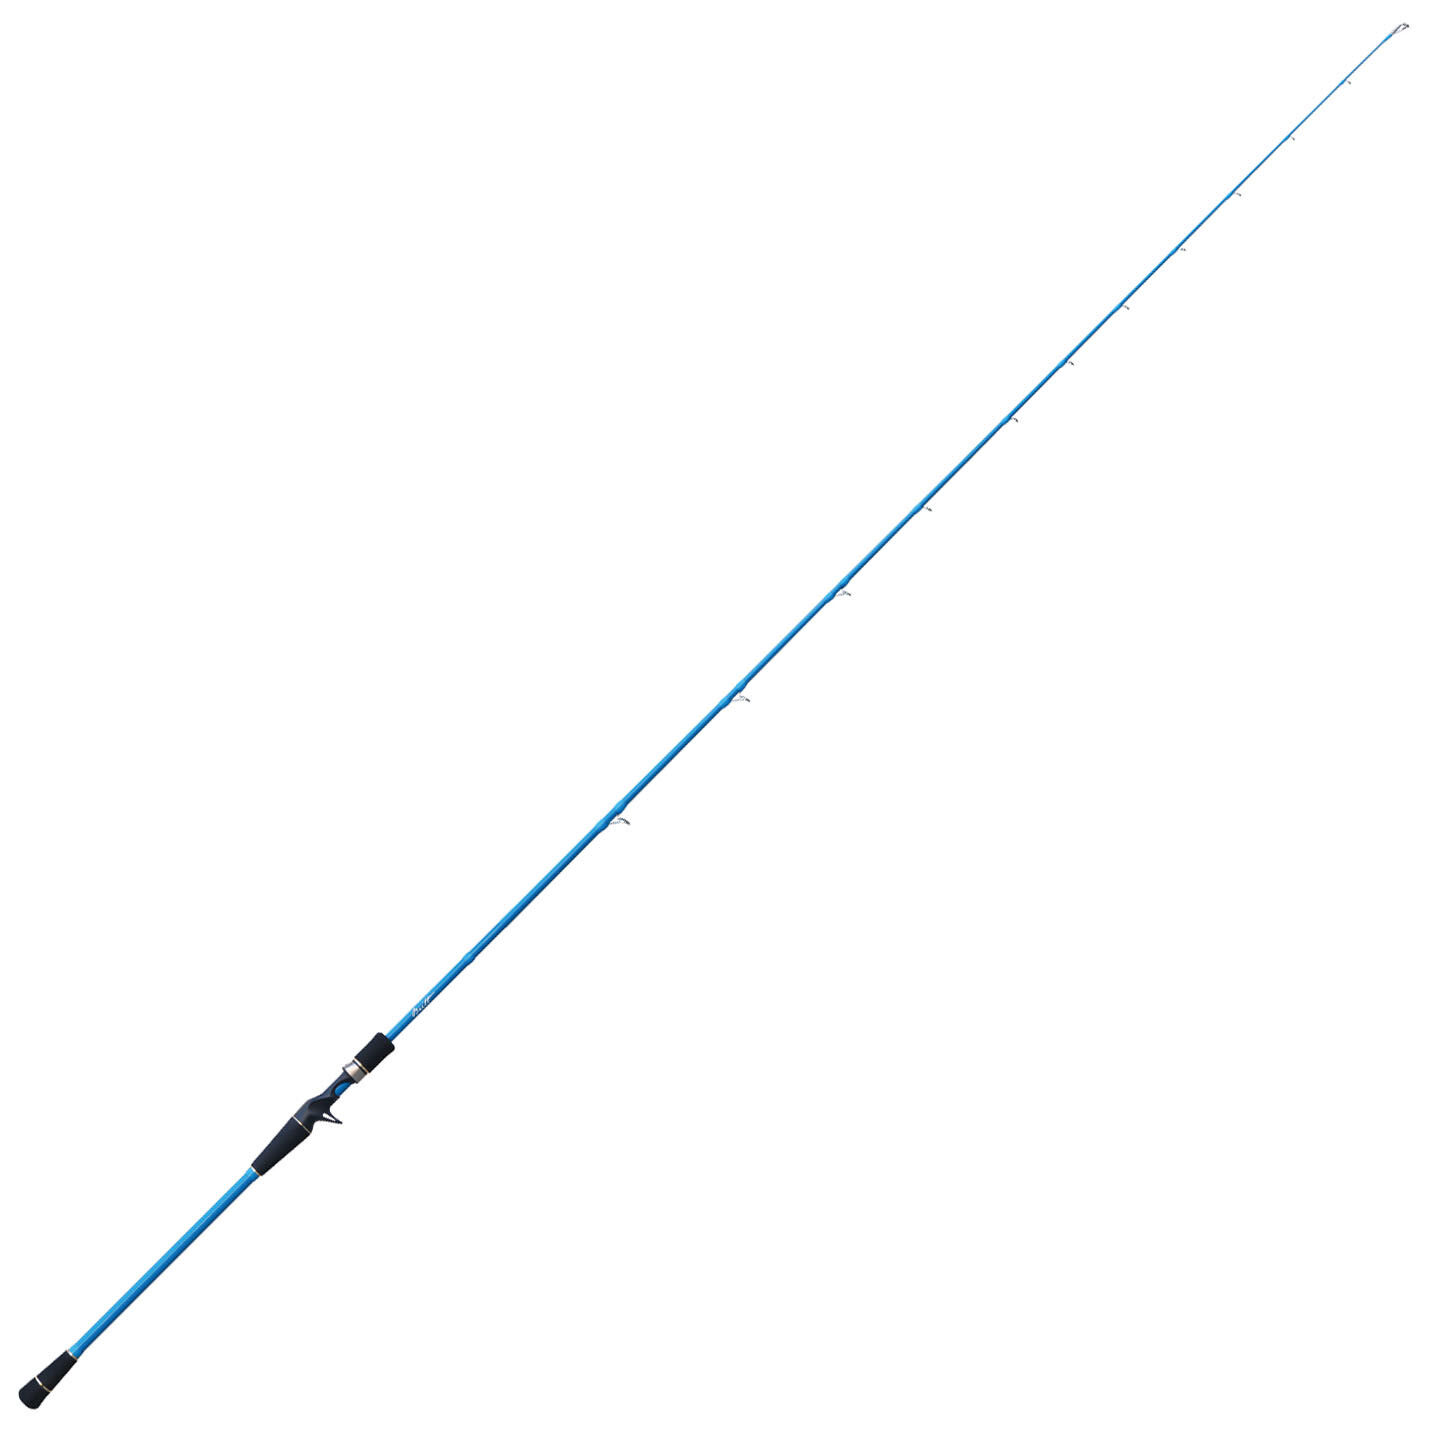 D0900360 Canna Pesca Jigging Slow Pitch Falcon Britt 6'8  80-200 gr  PP